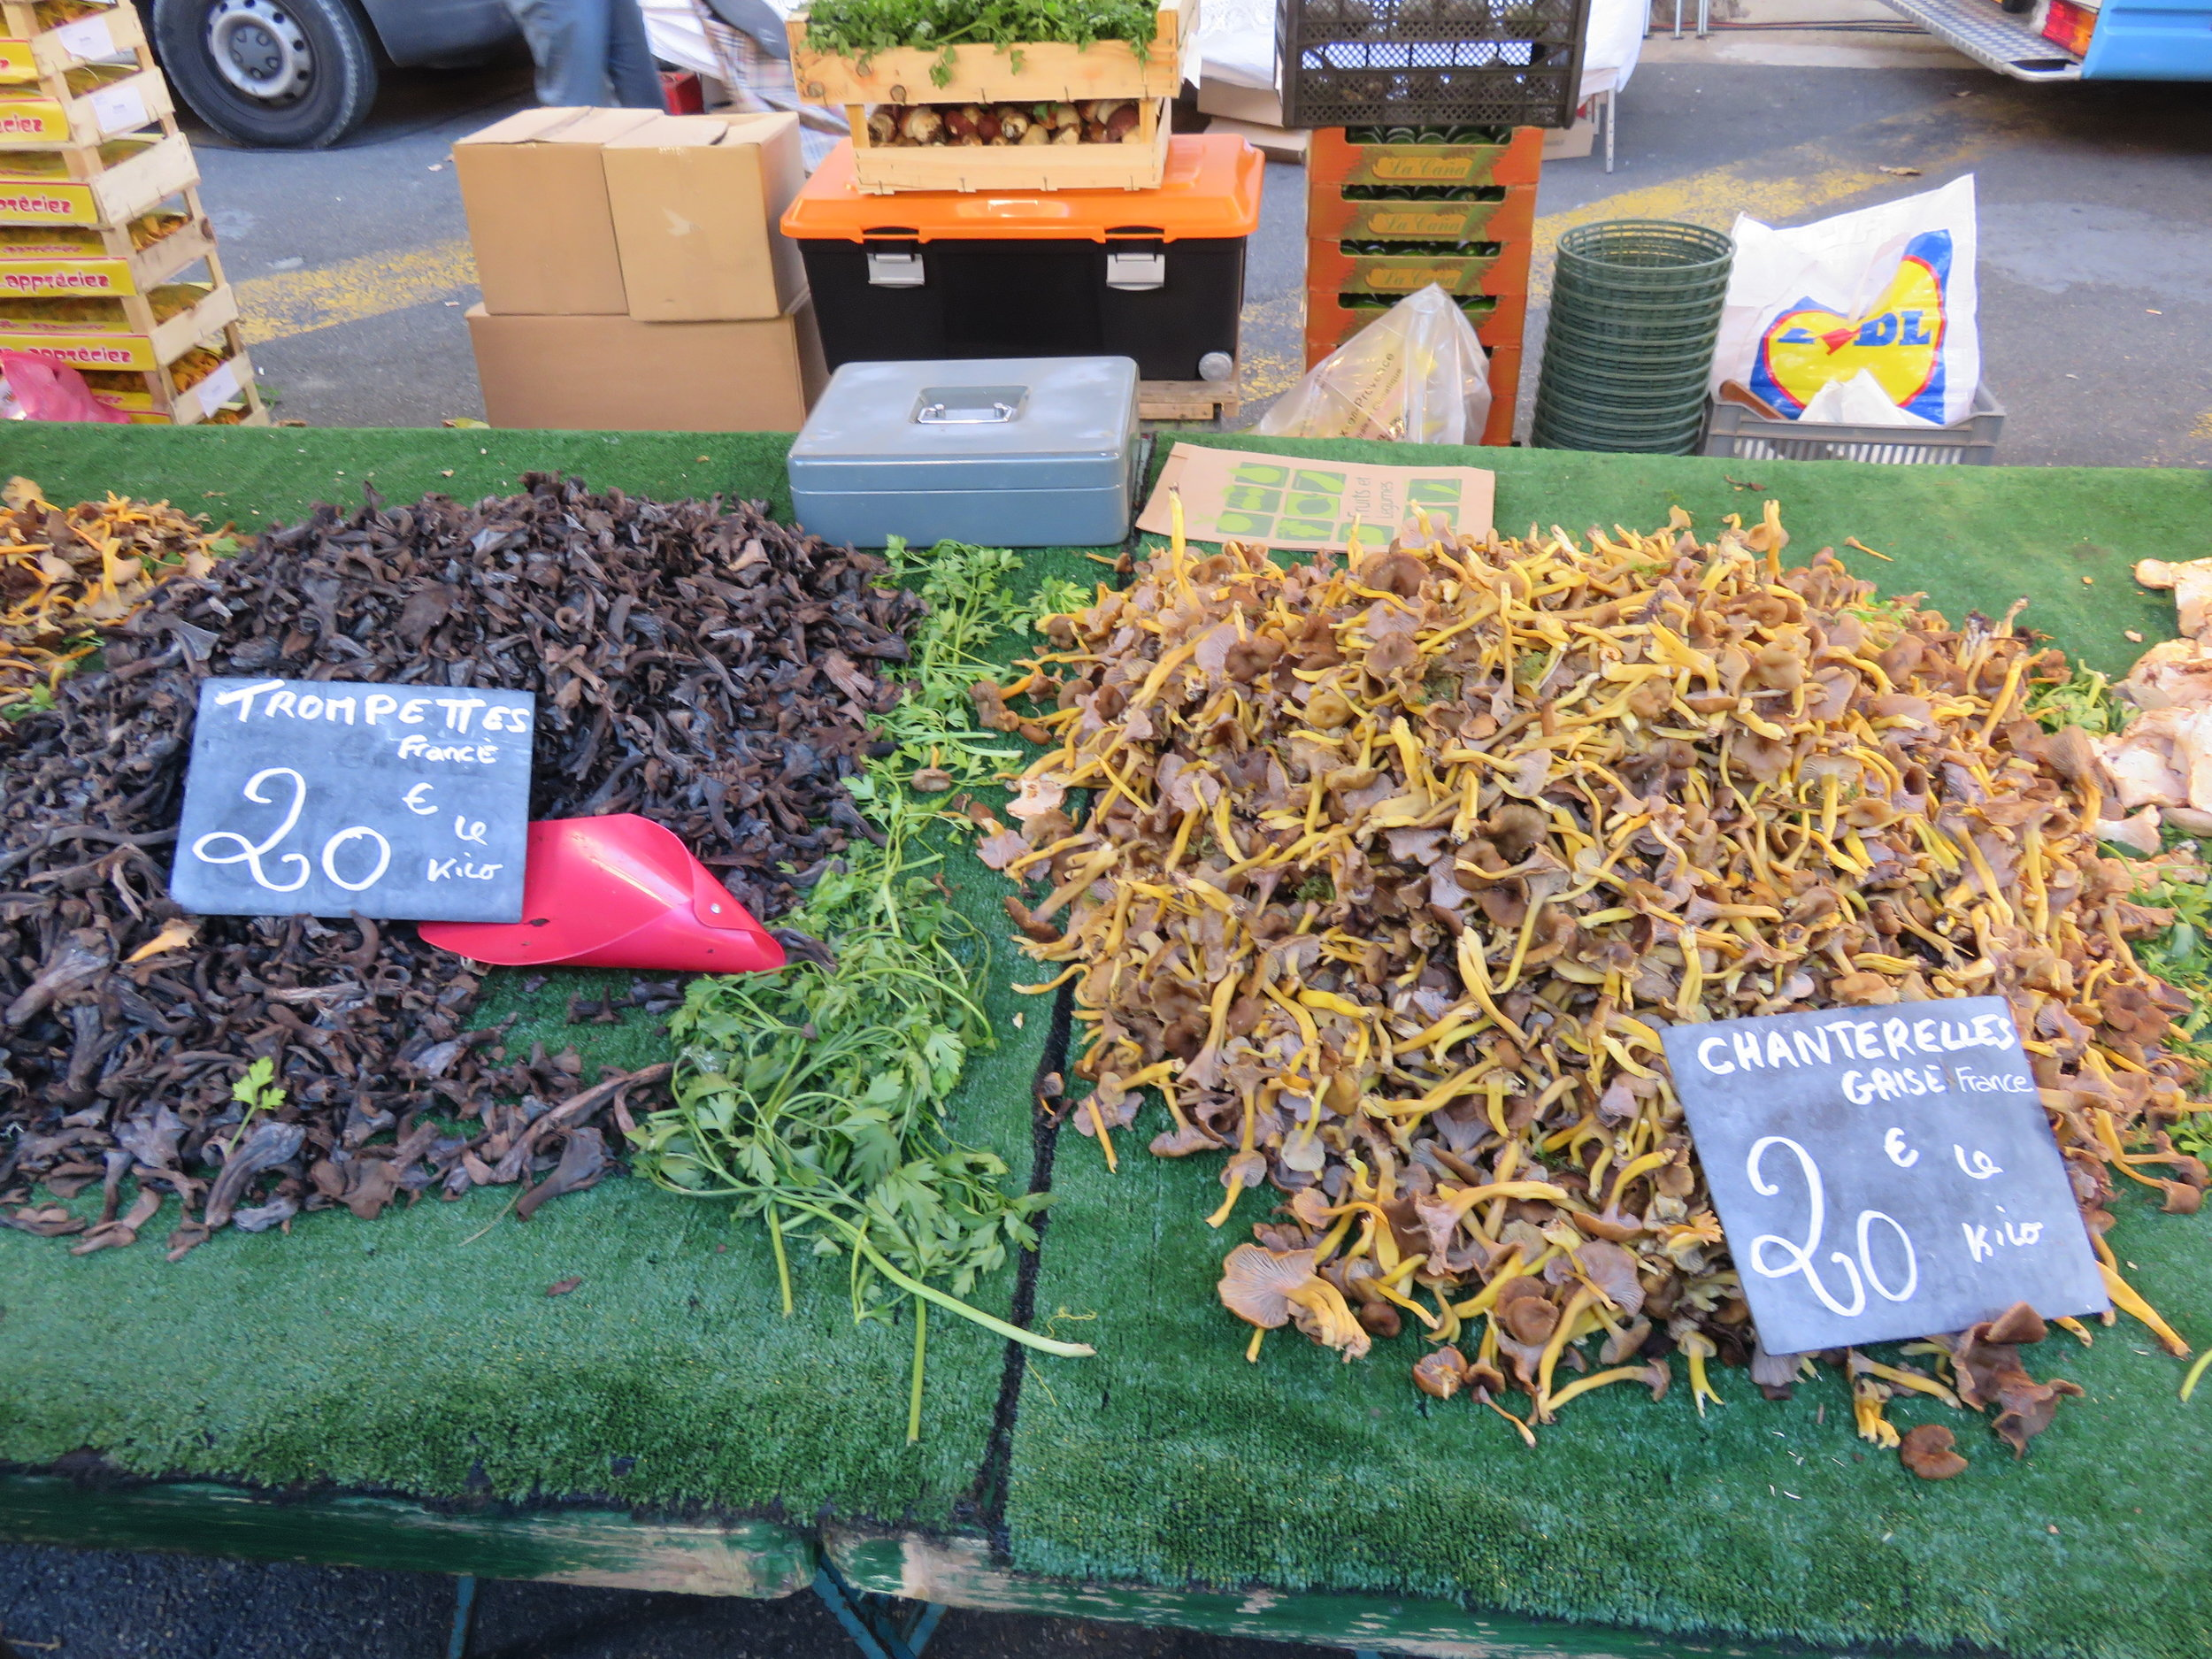 The market in Aix had over a dozen different types of mushrooms for sale.